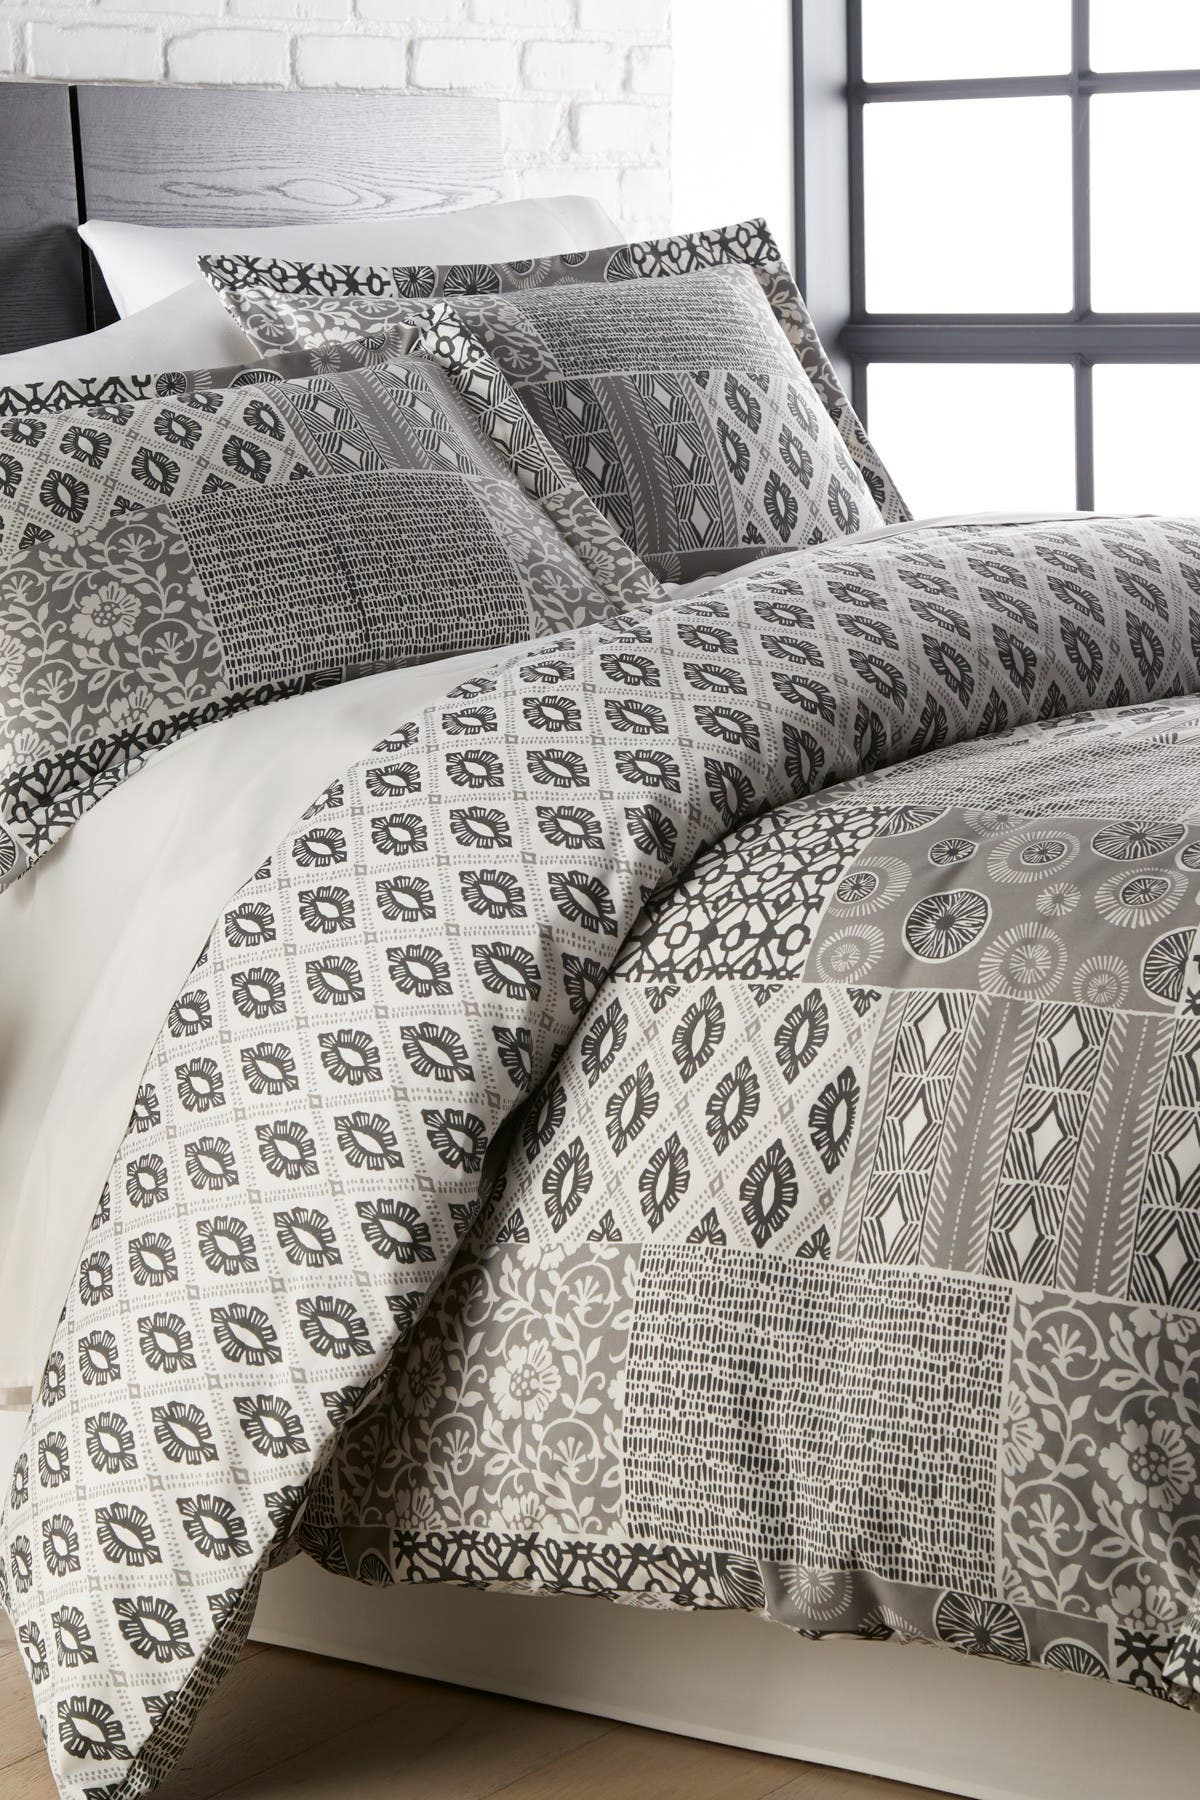 Image of SOUTHSHORE FINE LINENS Full/Queen Premium Oversized Duvet 3-Piece Set - Global Patchwork Grey